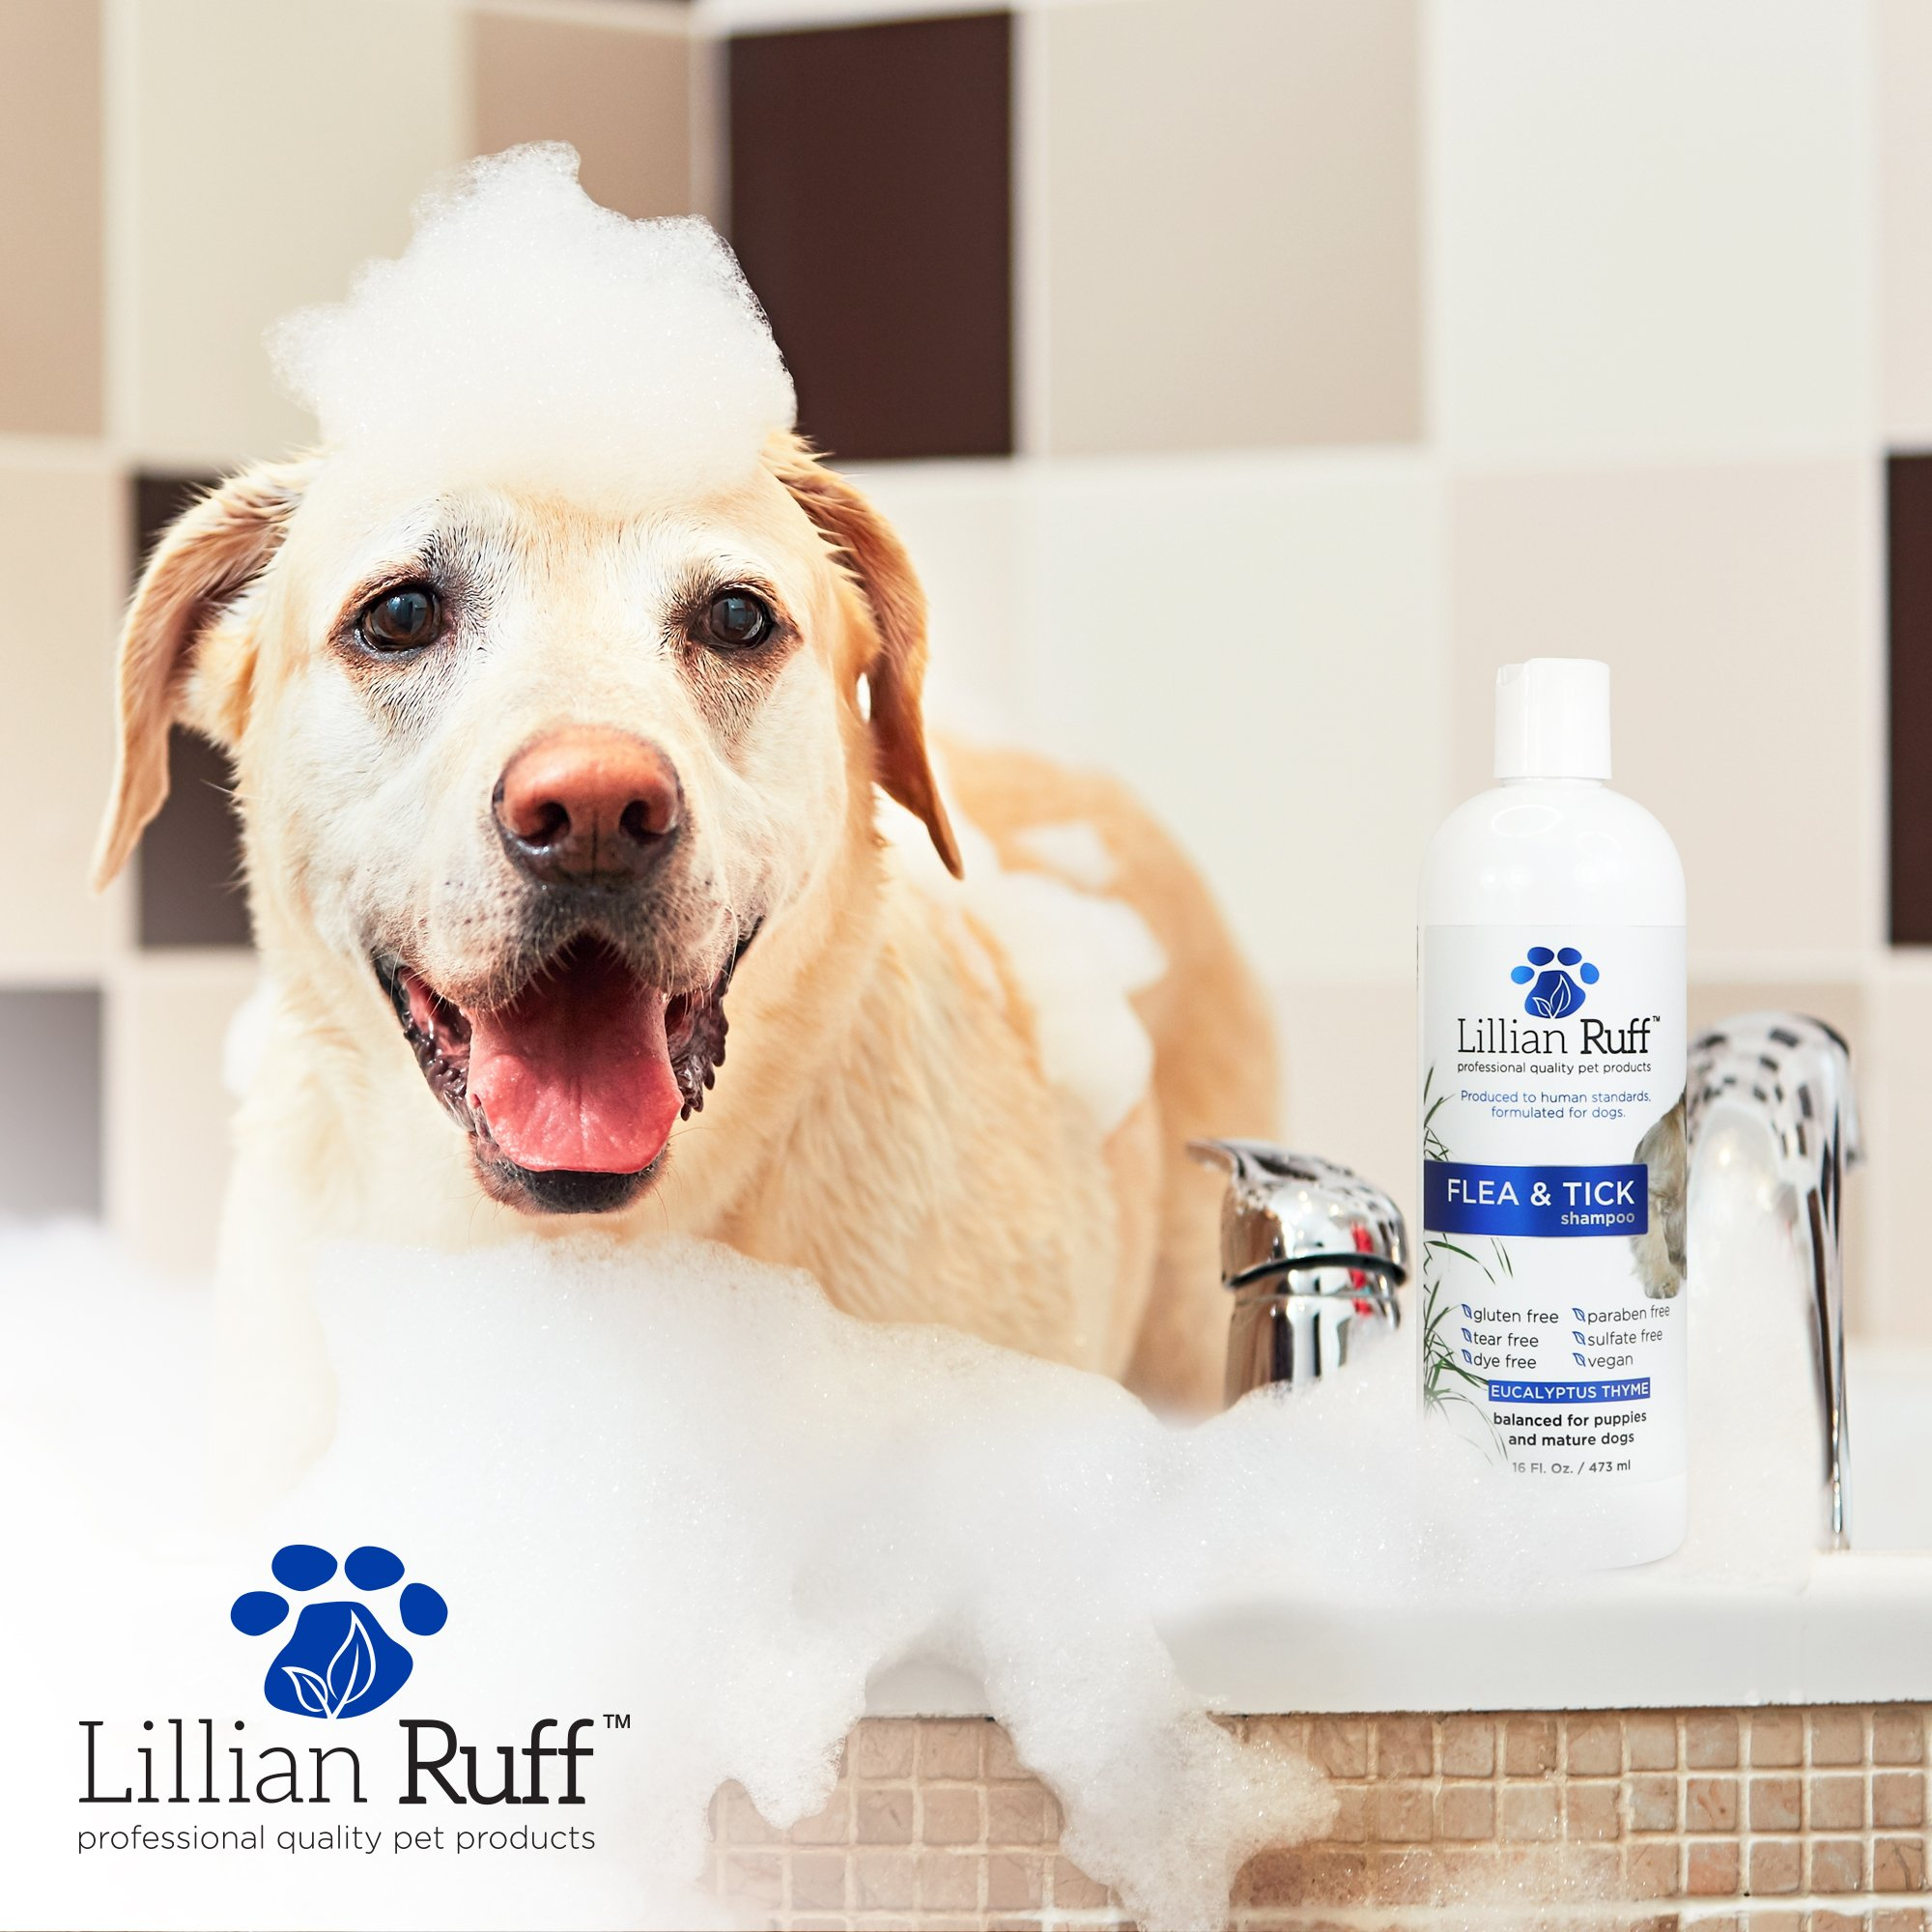 Lillian Ruff Flea and Tick Shampoo for Dogs with Aloe Vera - Soothe the Itch and Repel the Critters with Natural Essential Oils - Balanced for Puppies and Mature Dogs (16oz) by Lillian Ruff (Image #4)